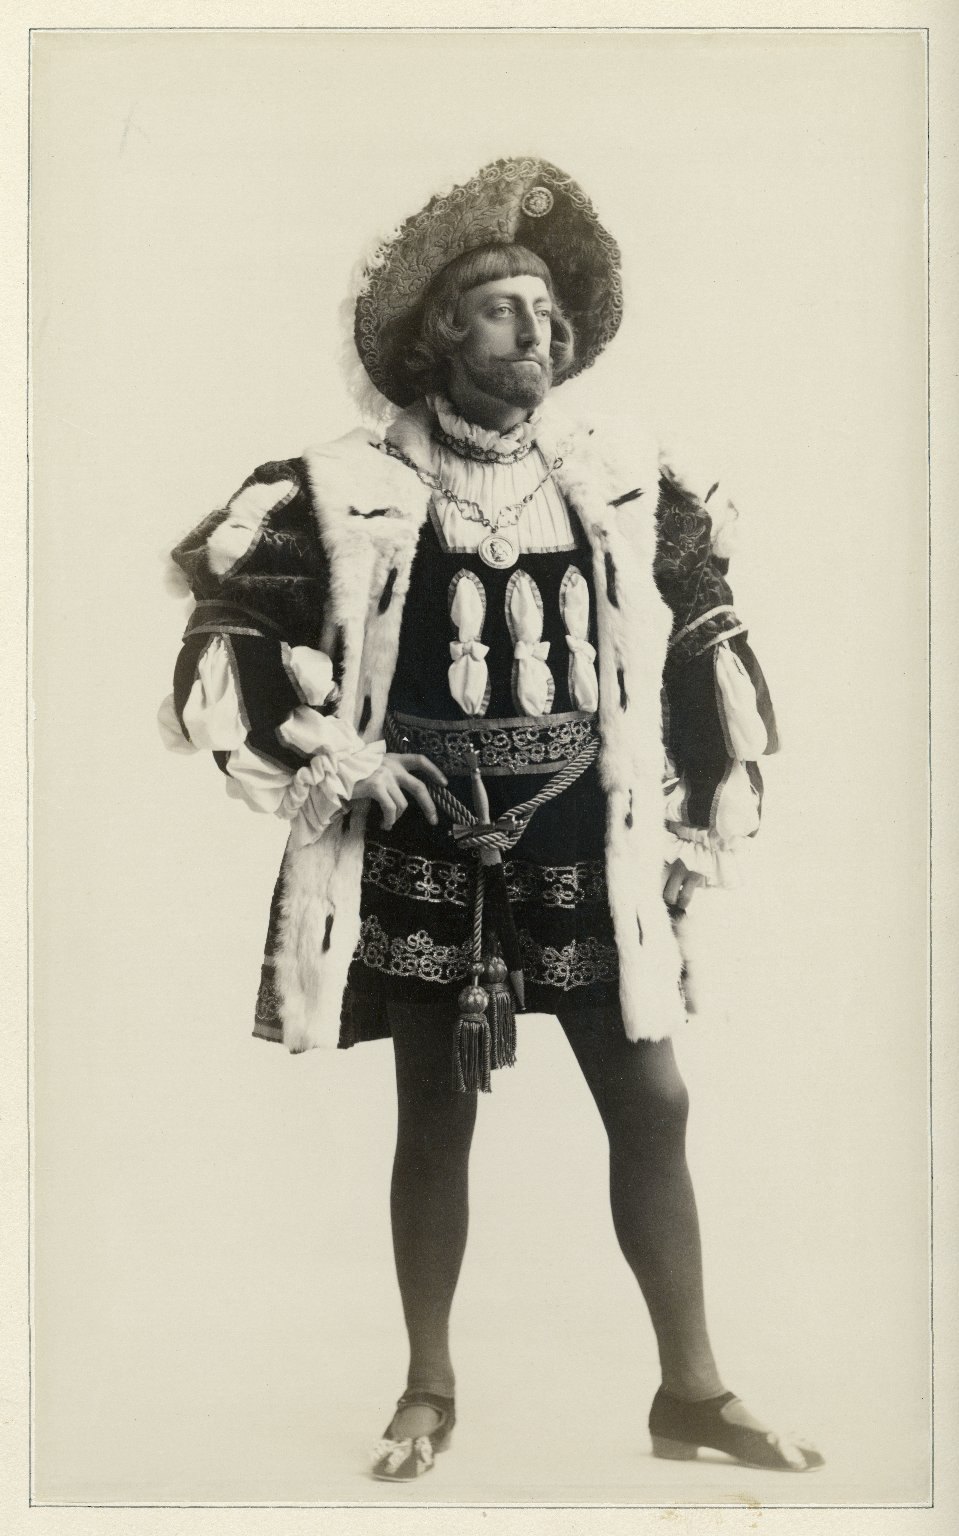 John Drew as King of Navarre [in Augustin Daly's production of Love's Labour's Lost]